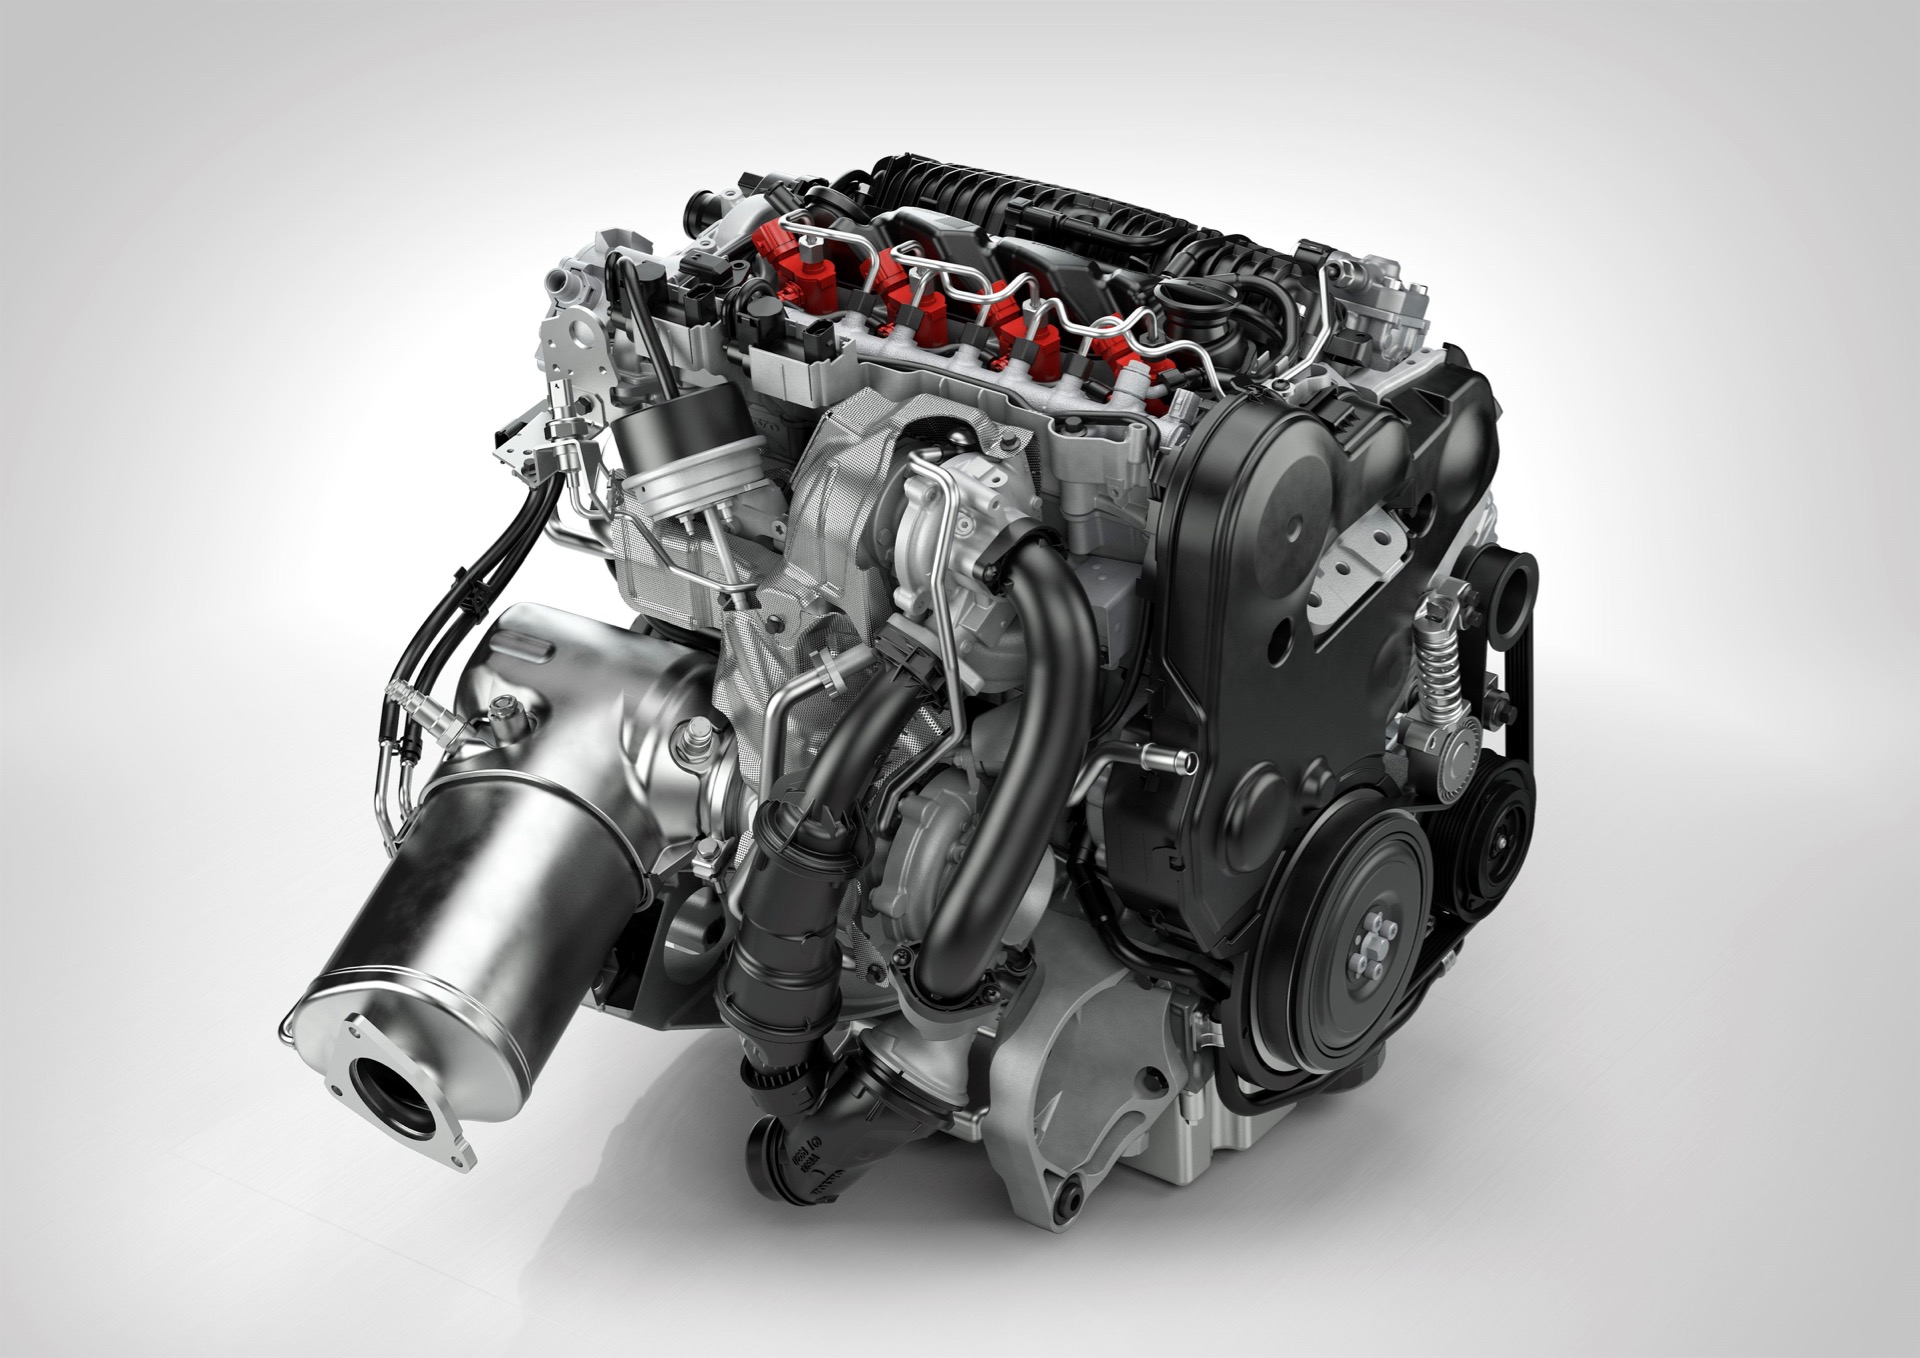 Drive E 4 Cylinder Diesel Engine D4 Rear -  2013, 2017 New S90, 2017 New V90, 2017 S60, 2017 S60 Cross Country, 2017 V60, 2017 V60 Cross Country, 2017 XC60, 2017 XC90, 2018 New S90, 2018 New V90, 2018 S60, 2018 S60 Cross Country, 2018 V60, 2018 V60 Cross Country, 2018 XC90, Environment, Exterior, Images, New S90, New V90, S60, S60 Cross Country, S80 (2008-2016), Sustainability, Technology, V60, V60 Cross Country, Volvo, XC60, XC70 (2008-2016), XC90